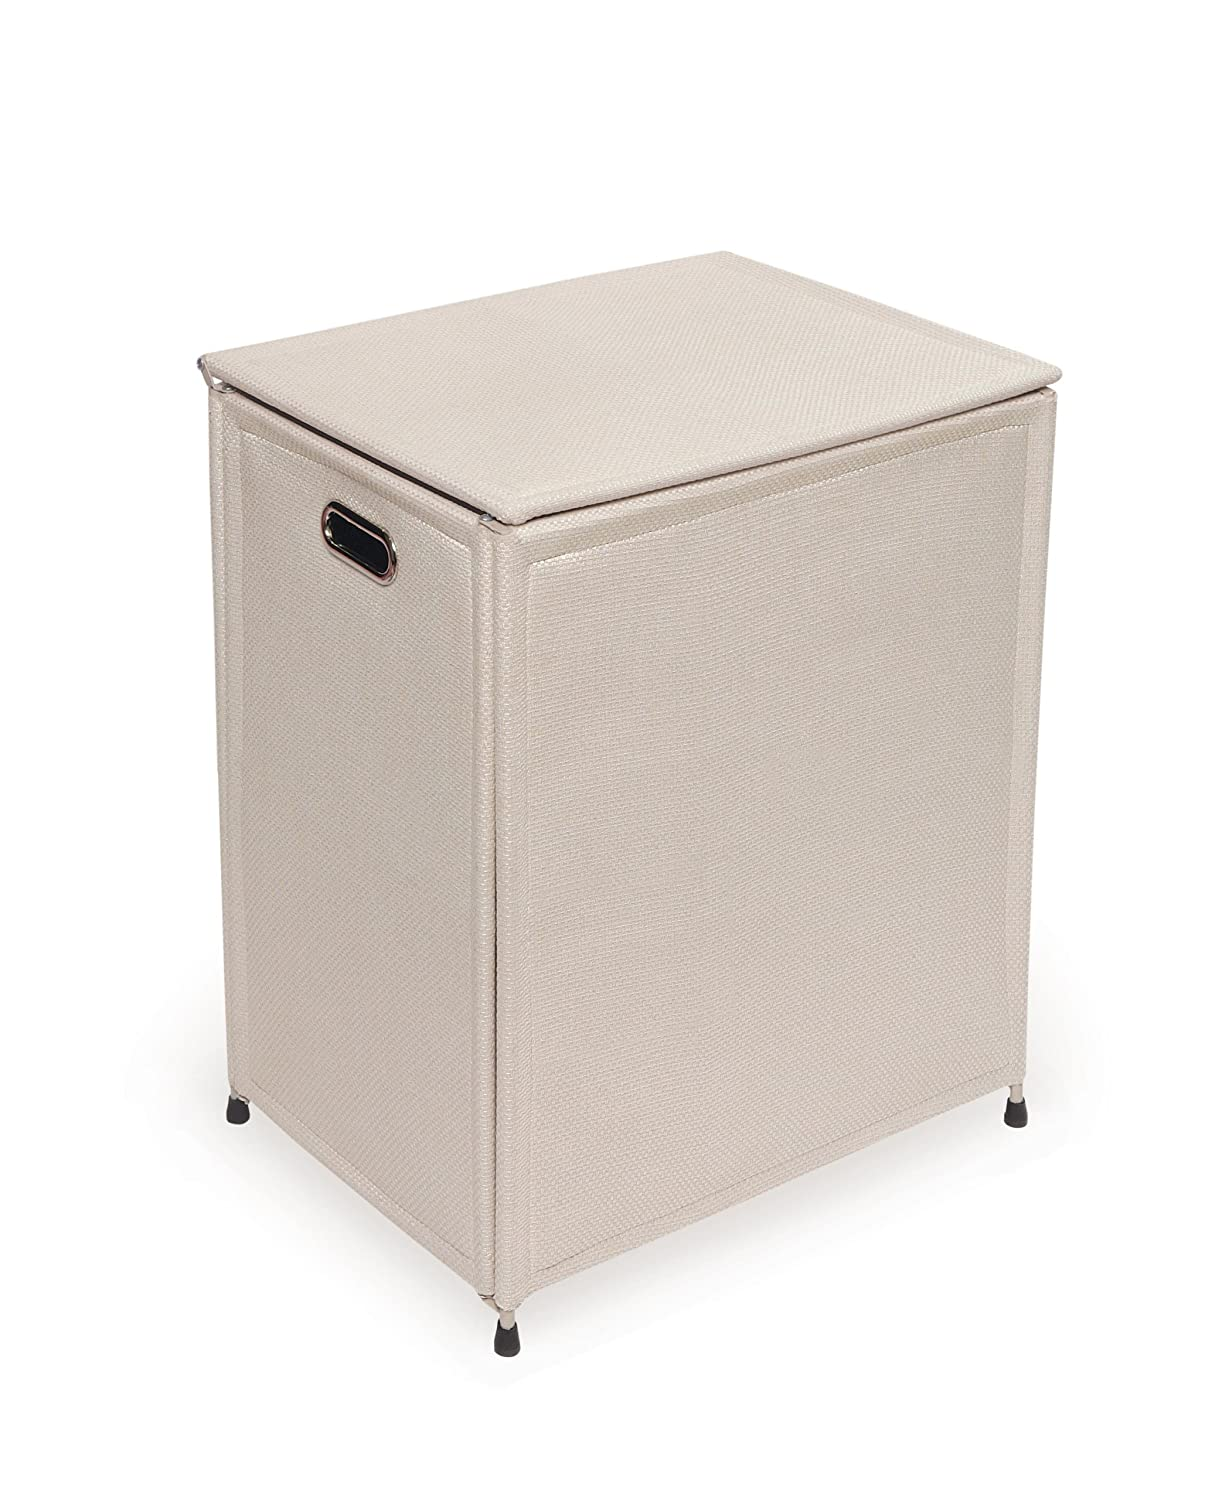 Rectangle Metal Frame Cloth Laundry Hamper with Flip-up Lid and Handles Badger Basket Company 30030